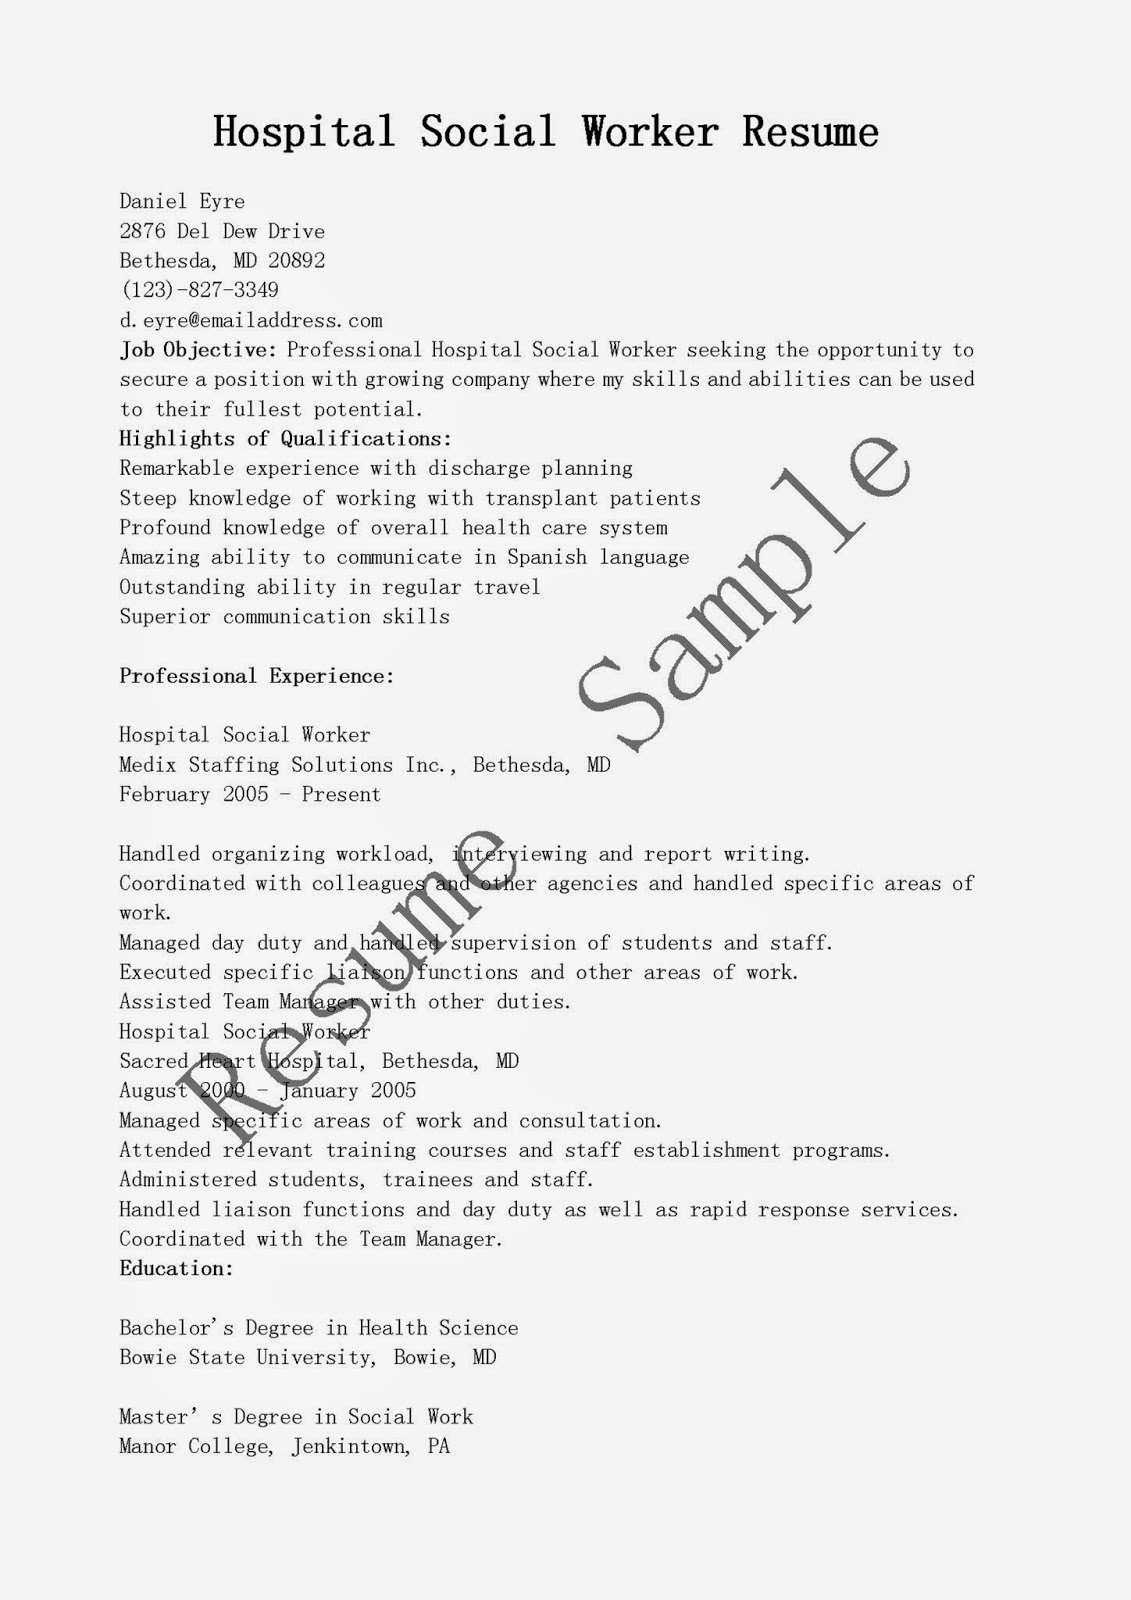 Social Worker Resume Template Best Of Resume Samples Hospital social Worker Resume Sample